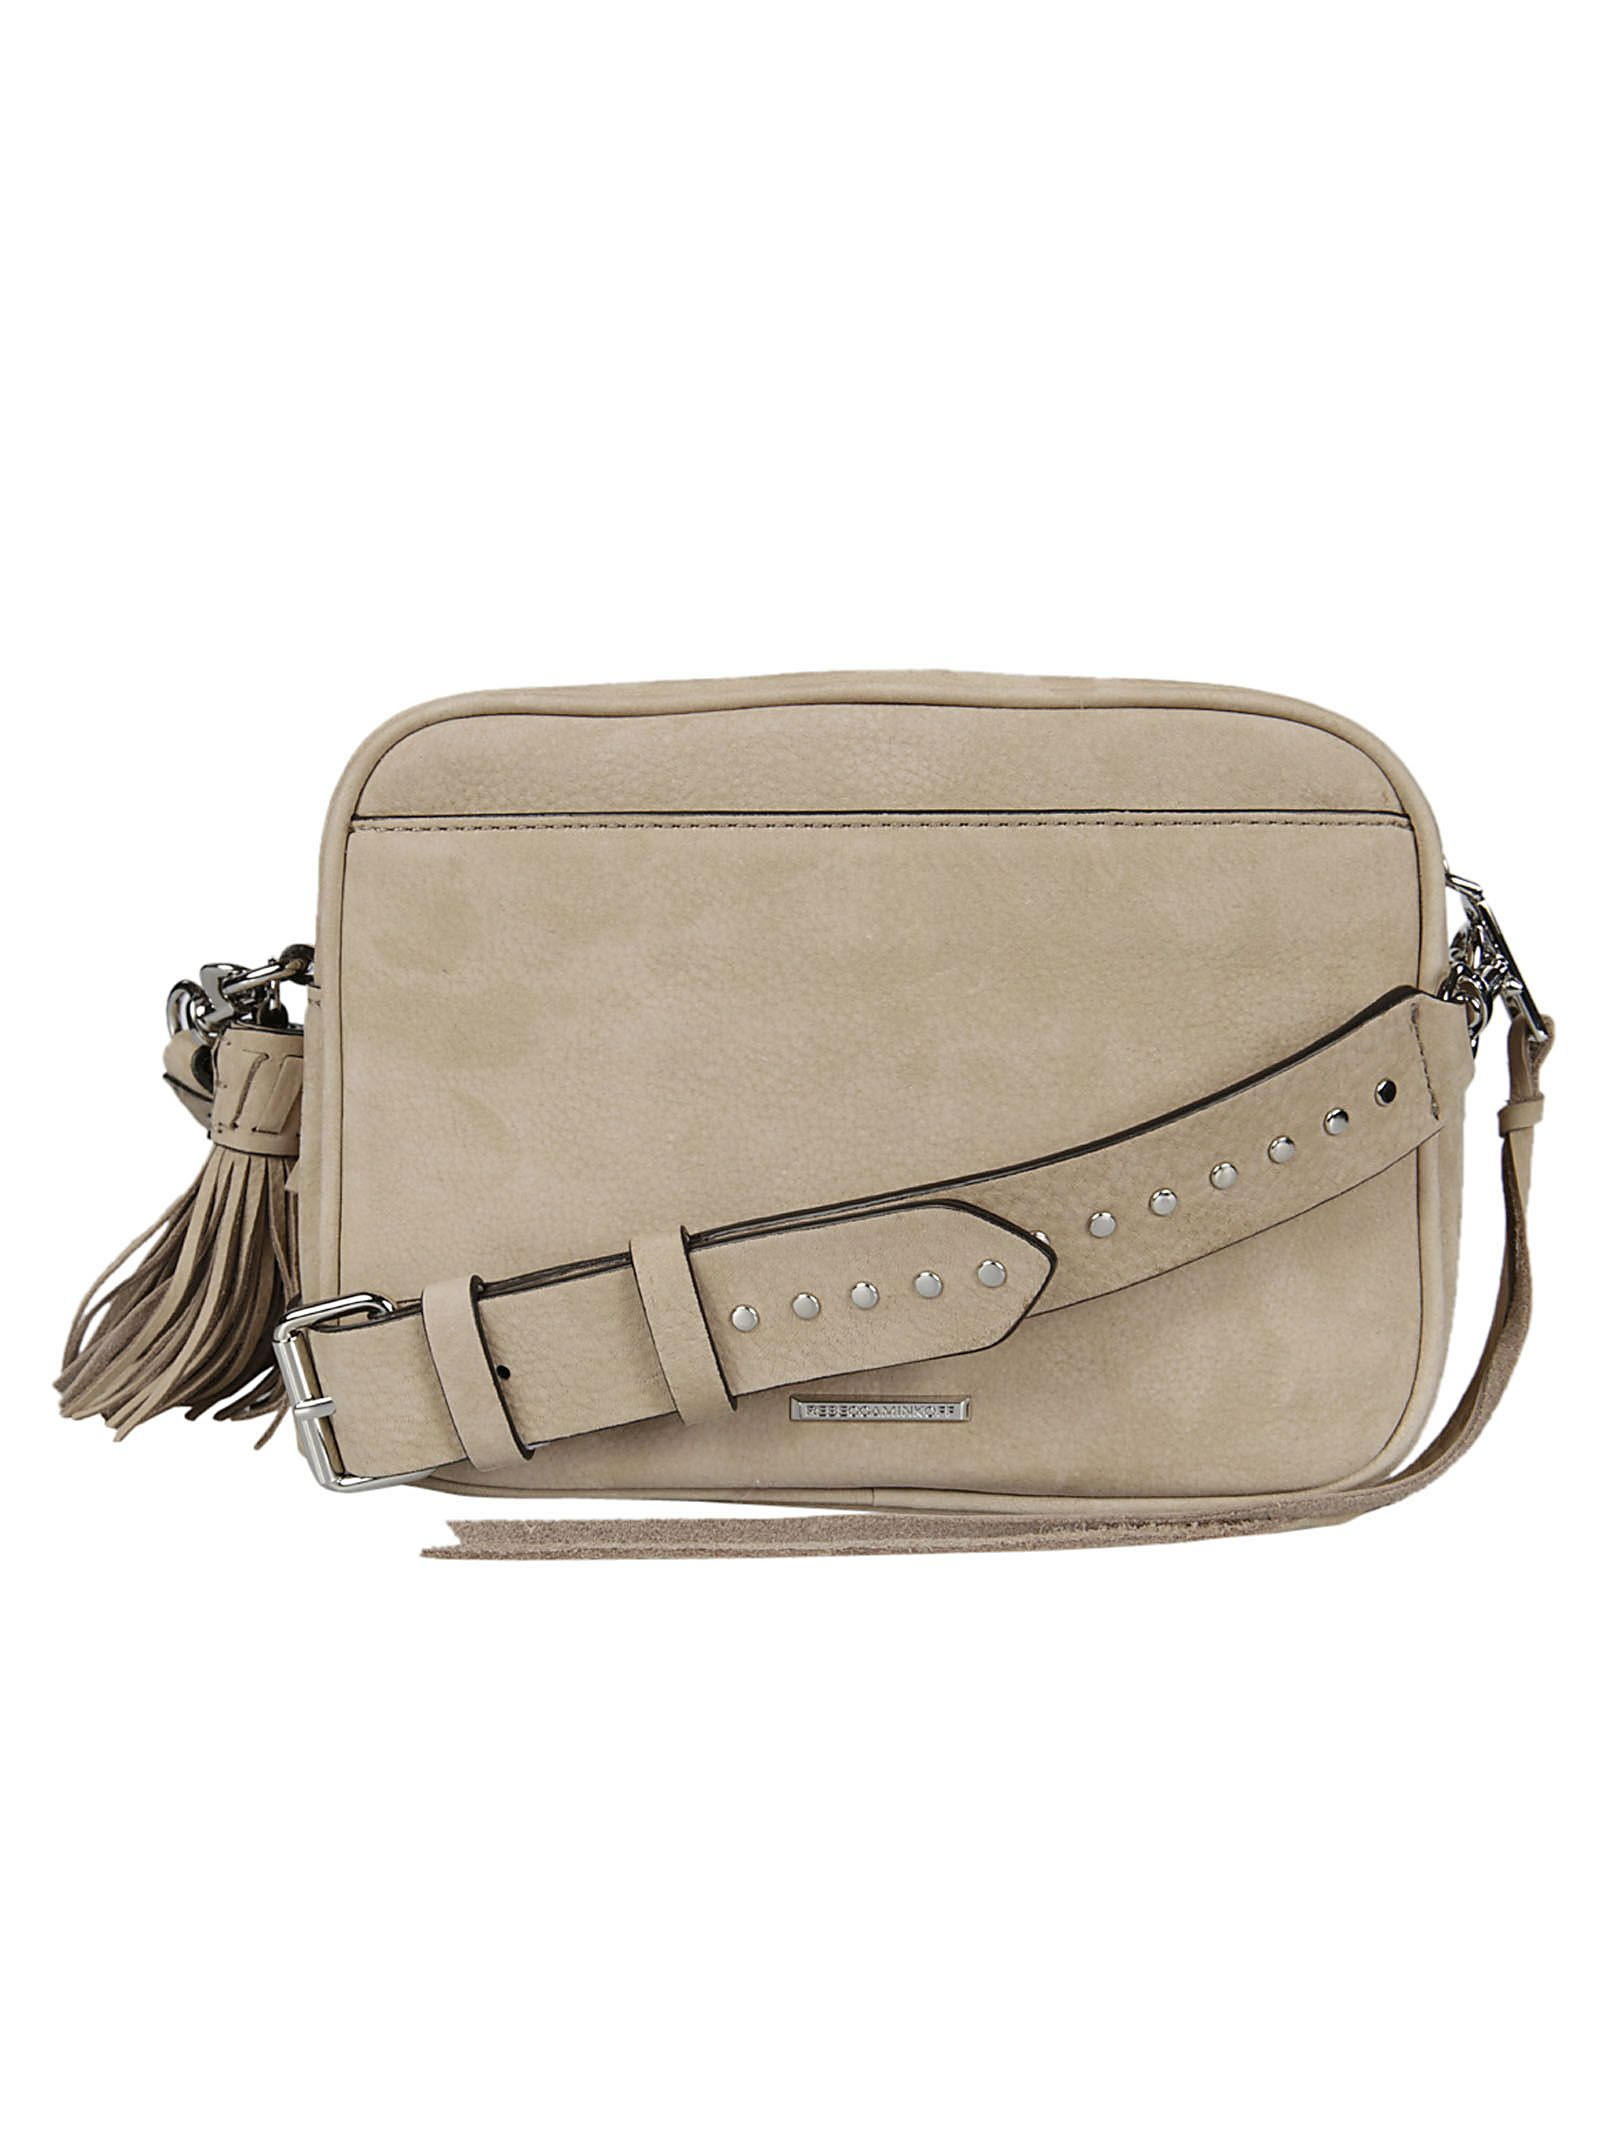 Rebecca Minkoff Bryn Camera Shoulder Bag